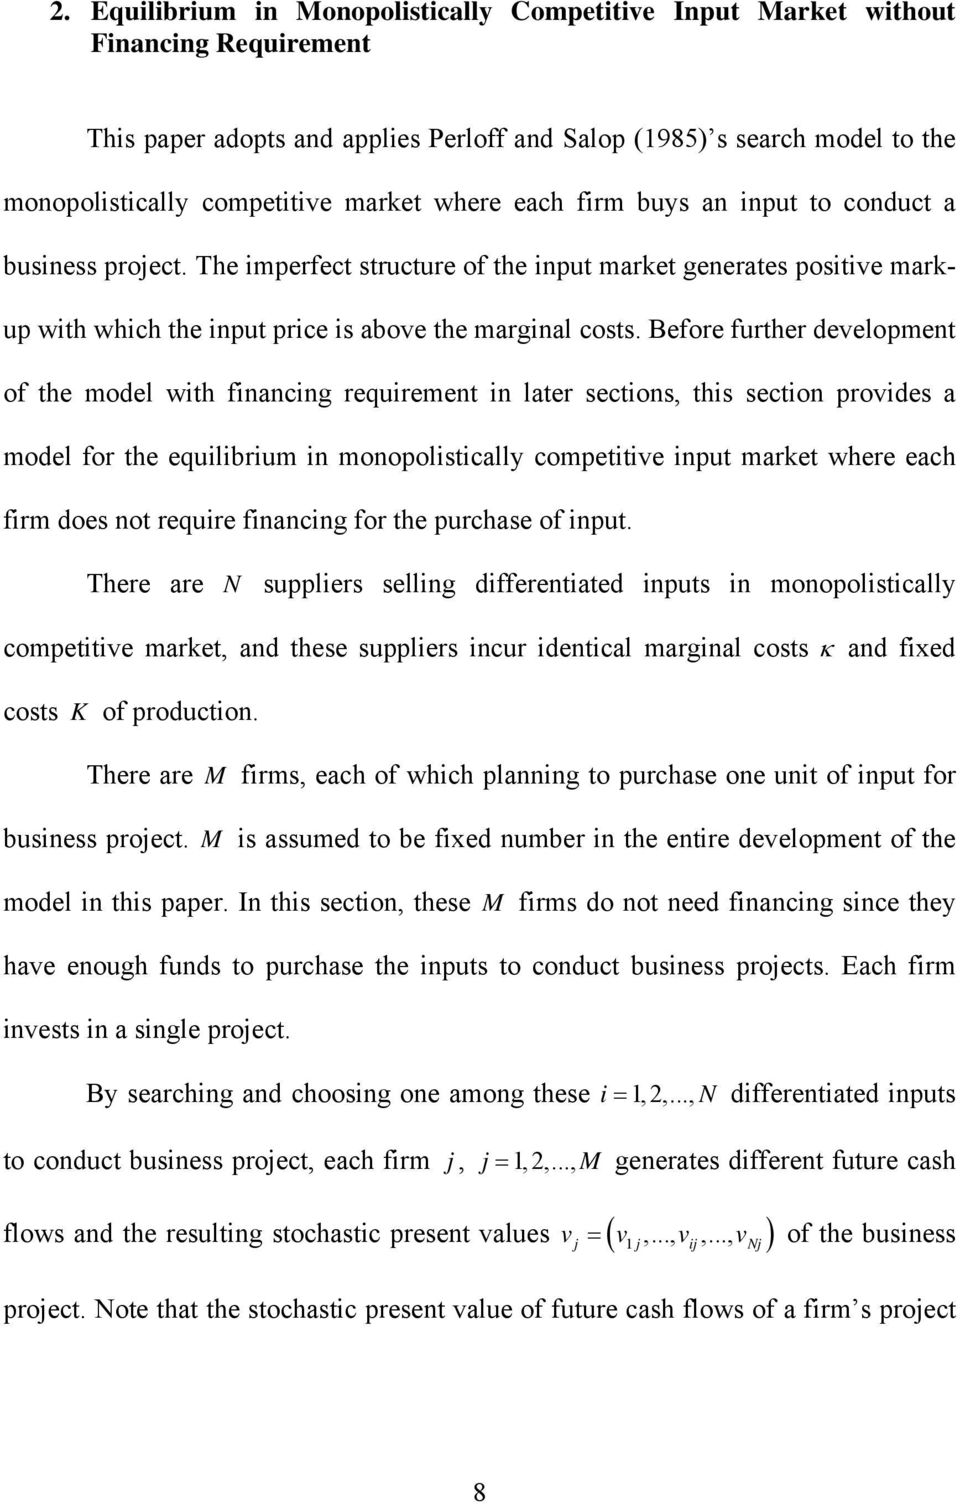 Before further development of the model with financing requirement in later sections, this section provides a model for the equilibrium in monopolistically competitive input market where each firm